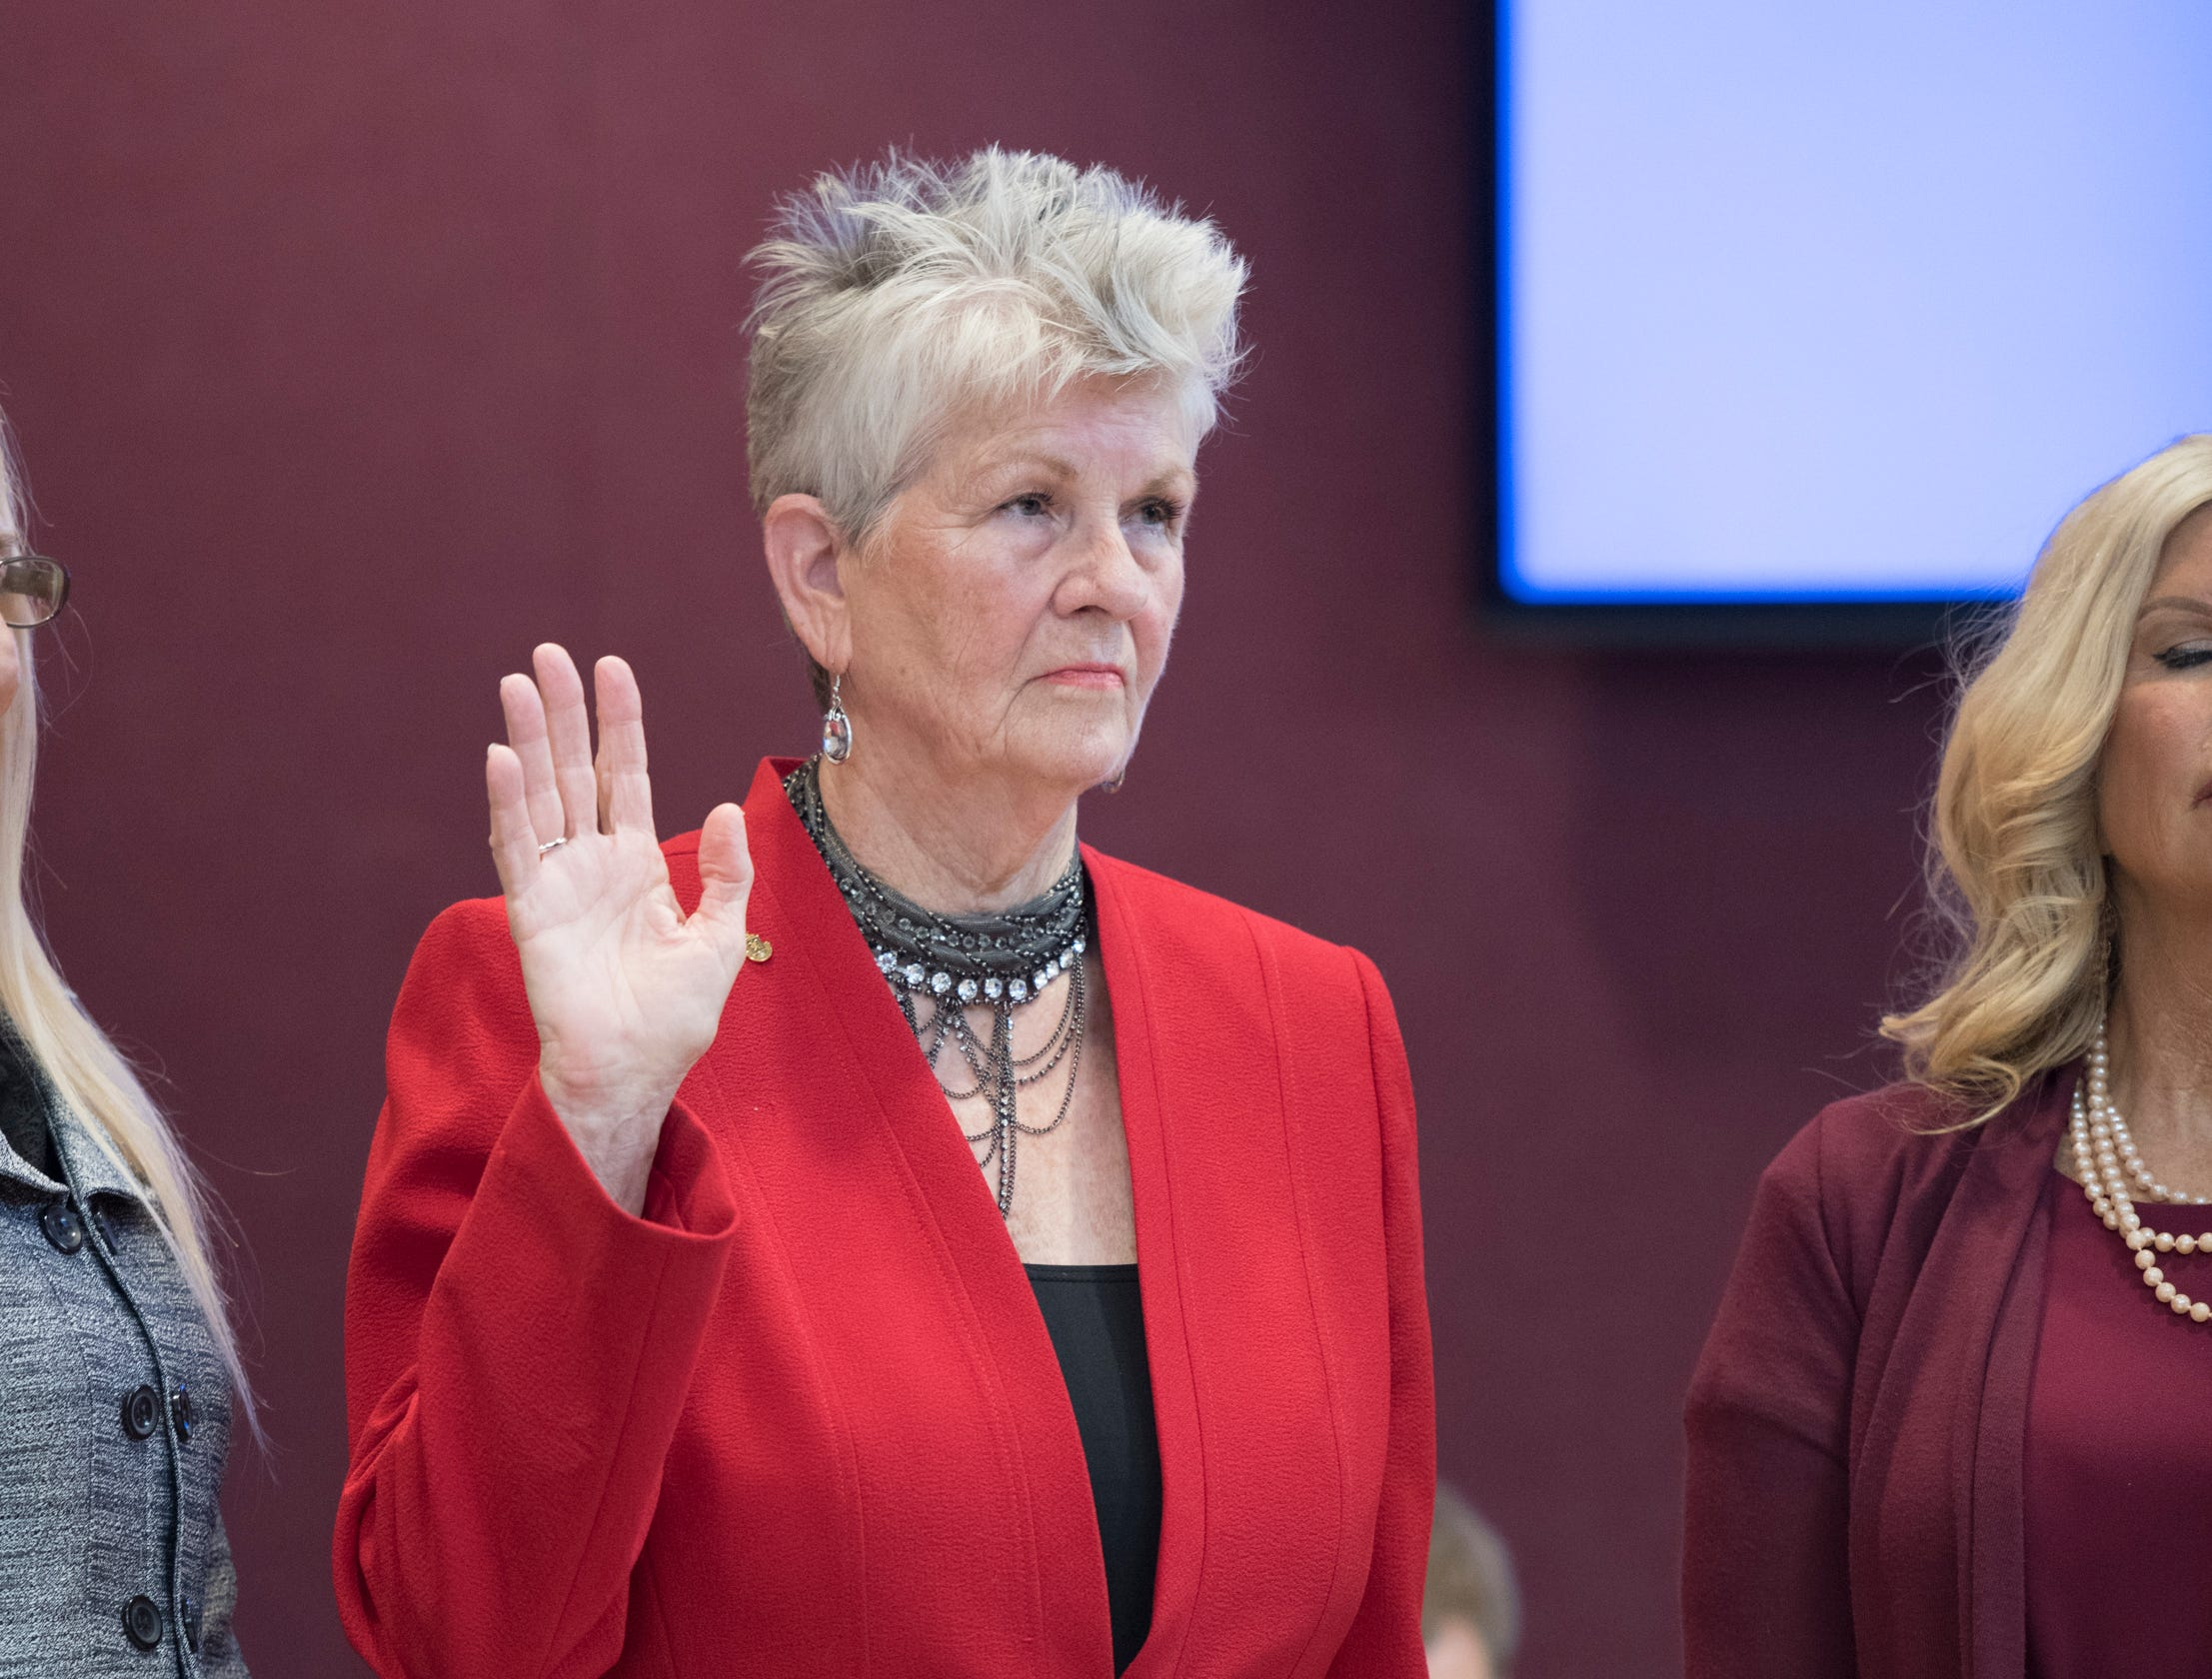 Newly re-elected council member Sherri Myers raises her hand as she is sworn in during the Pensacola City Council installation ceremony at City Hall in Pensacola on Tuesday, November 27, 2018.